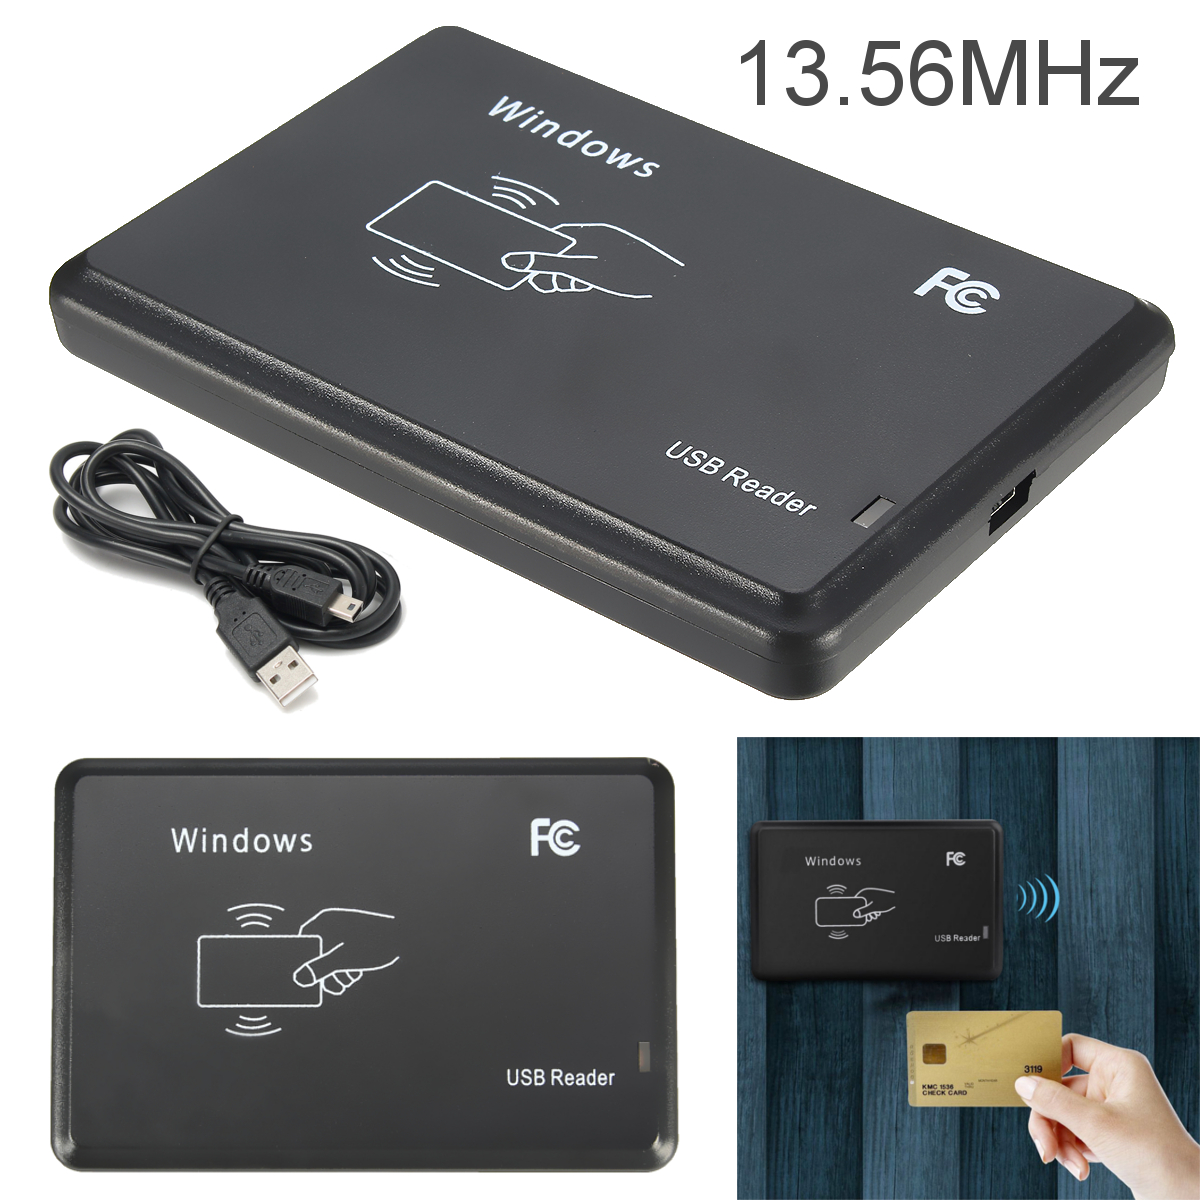 13.56MHZ USB M ifare RFID Contactless Proximity Sensor Smart Cards/ID Card Reader Writer 14443A with USB Cable contactless 14443a ic card reader with usb interface 5pcs cards 5pcs key fob 13 56mhz rfid black color